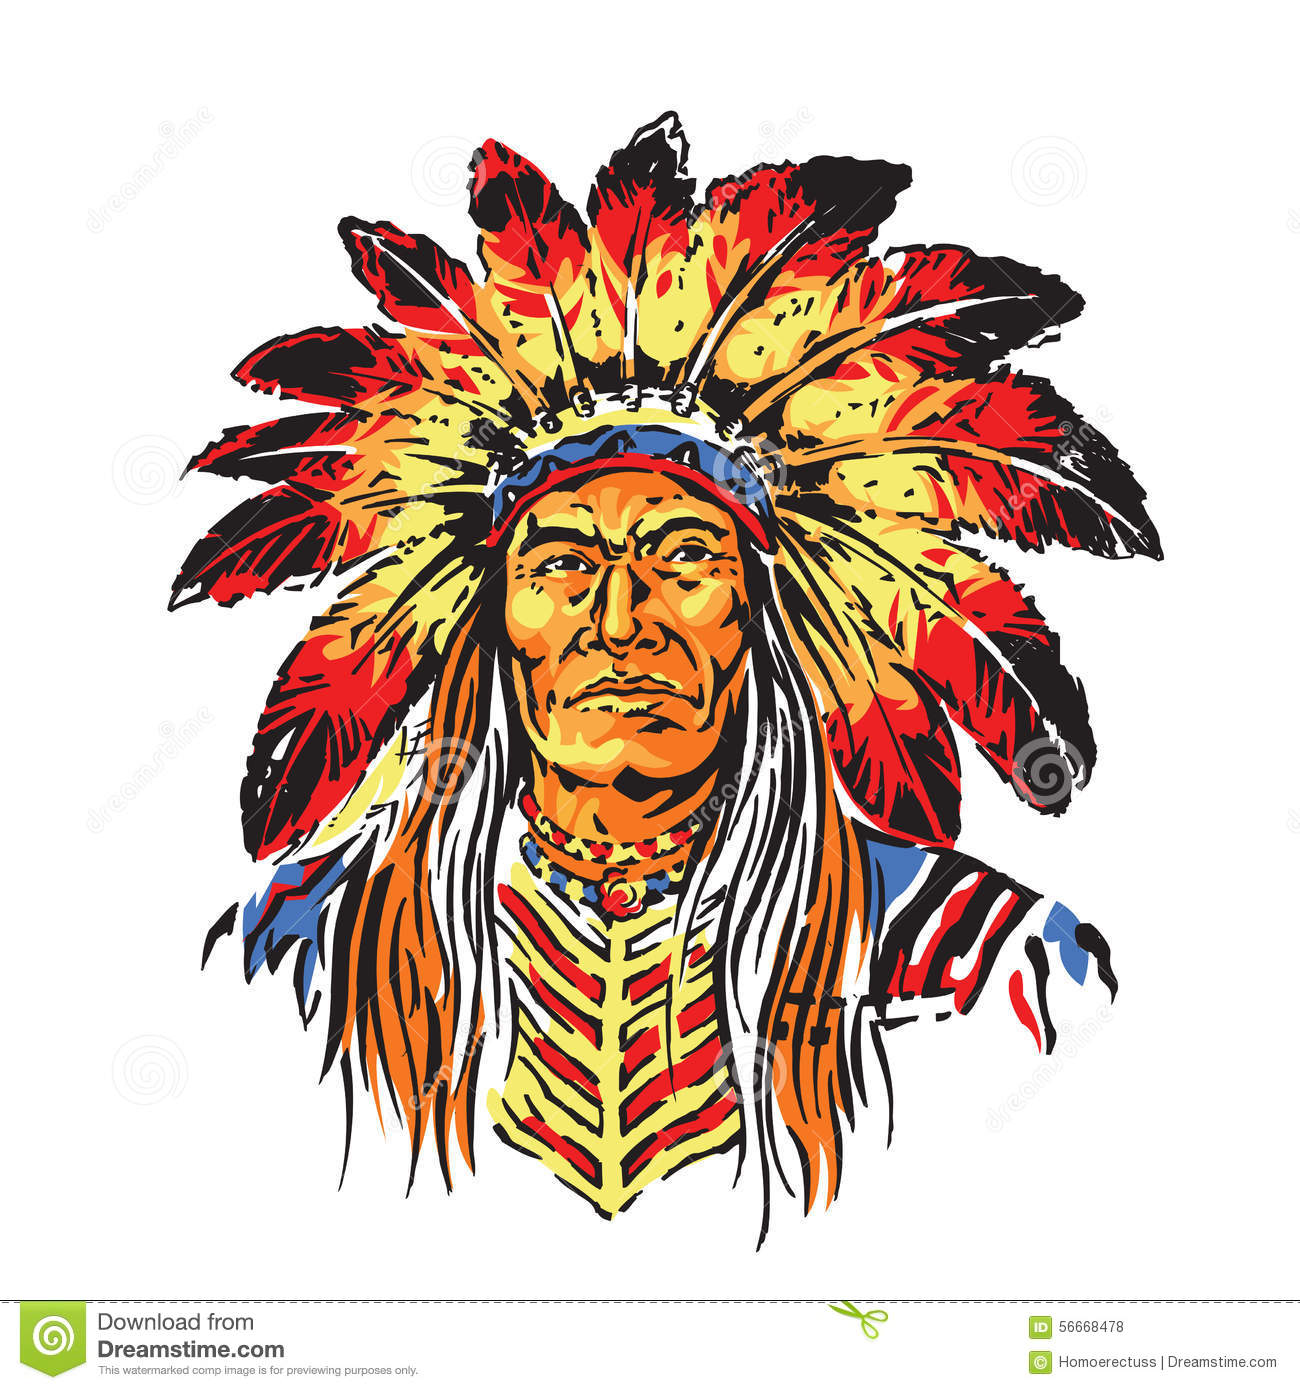 b2f571ed1 Vector Illustration of Bright and Colorful Indian War Chief Illustration